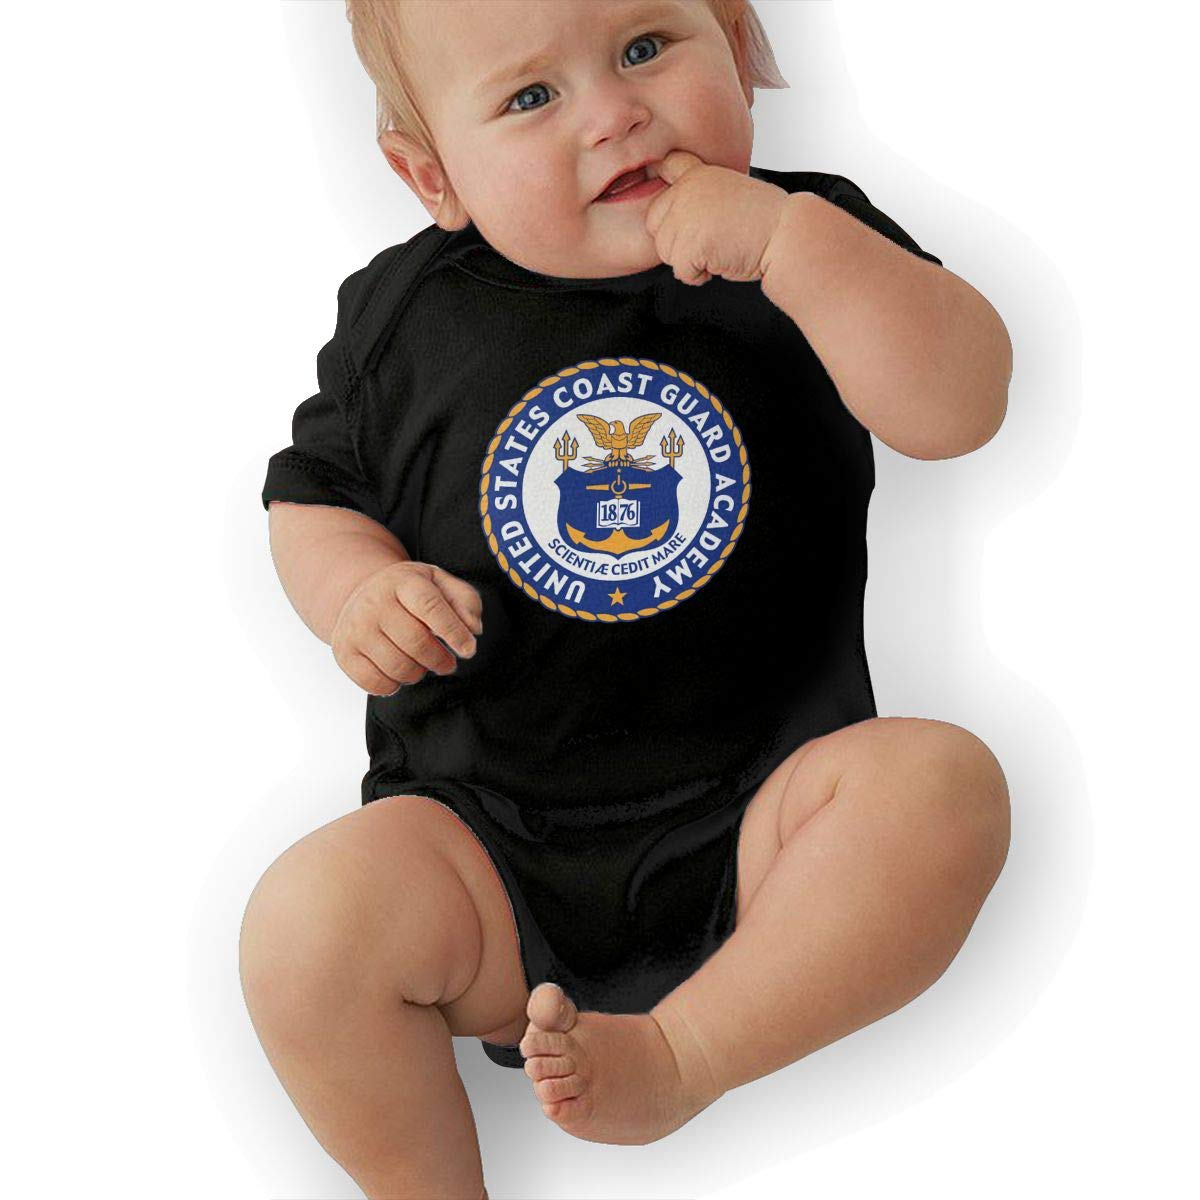 United States Coast Guard Academy Logo Baby Pajamas Bodysuits Clothes Onesies Jumpsuits Outfits Black